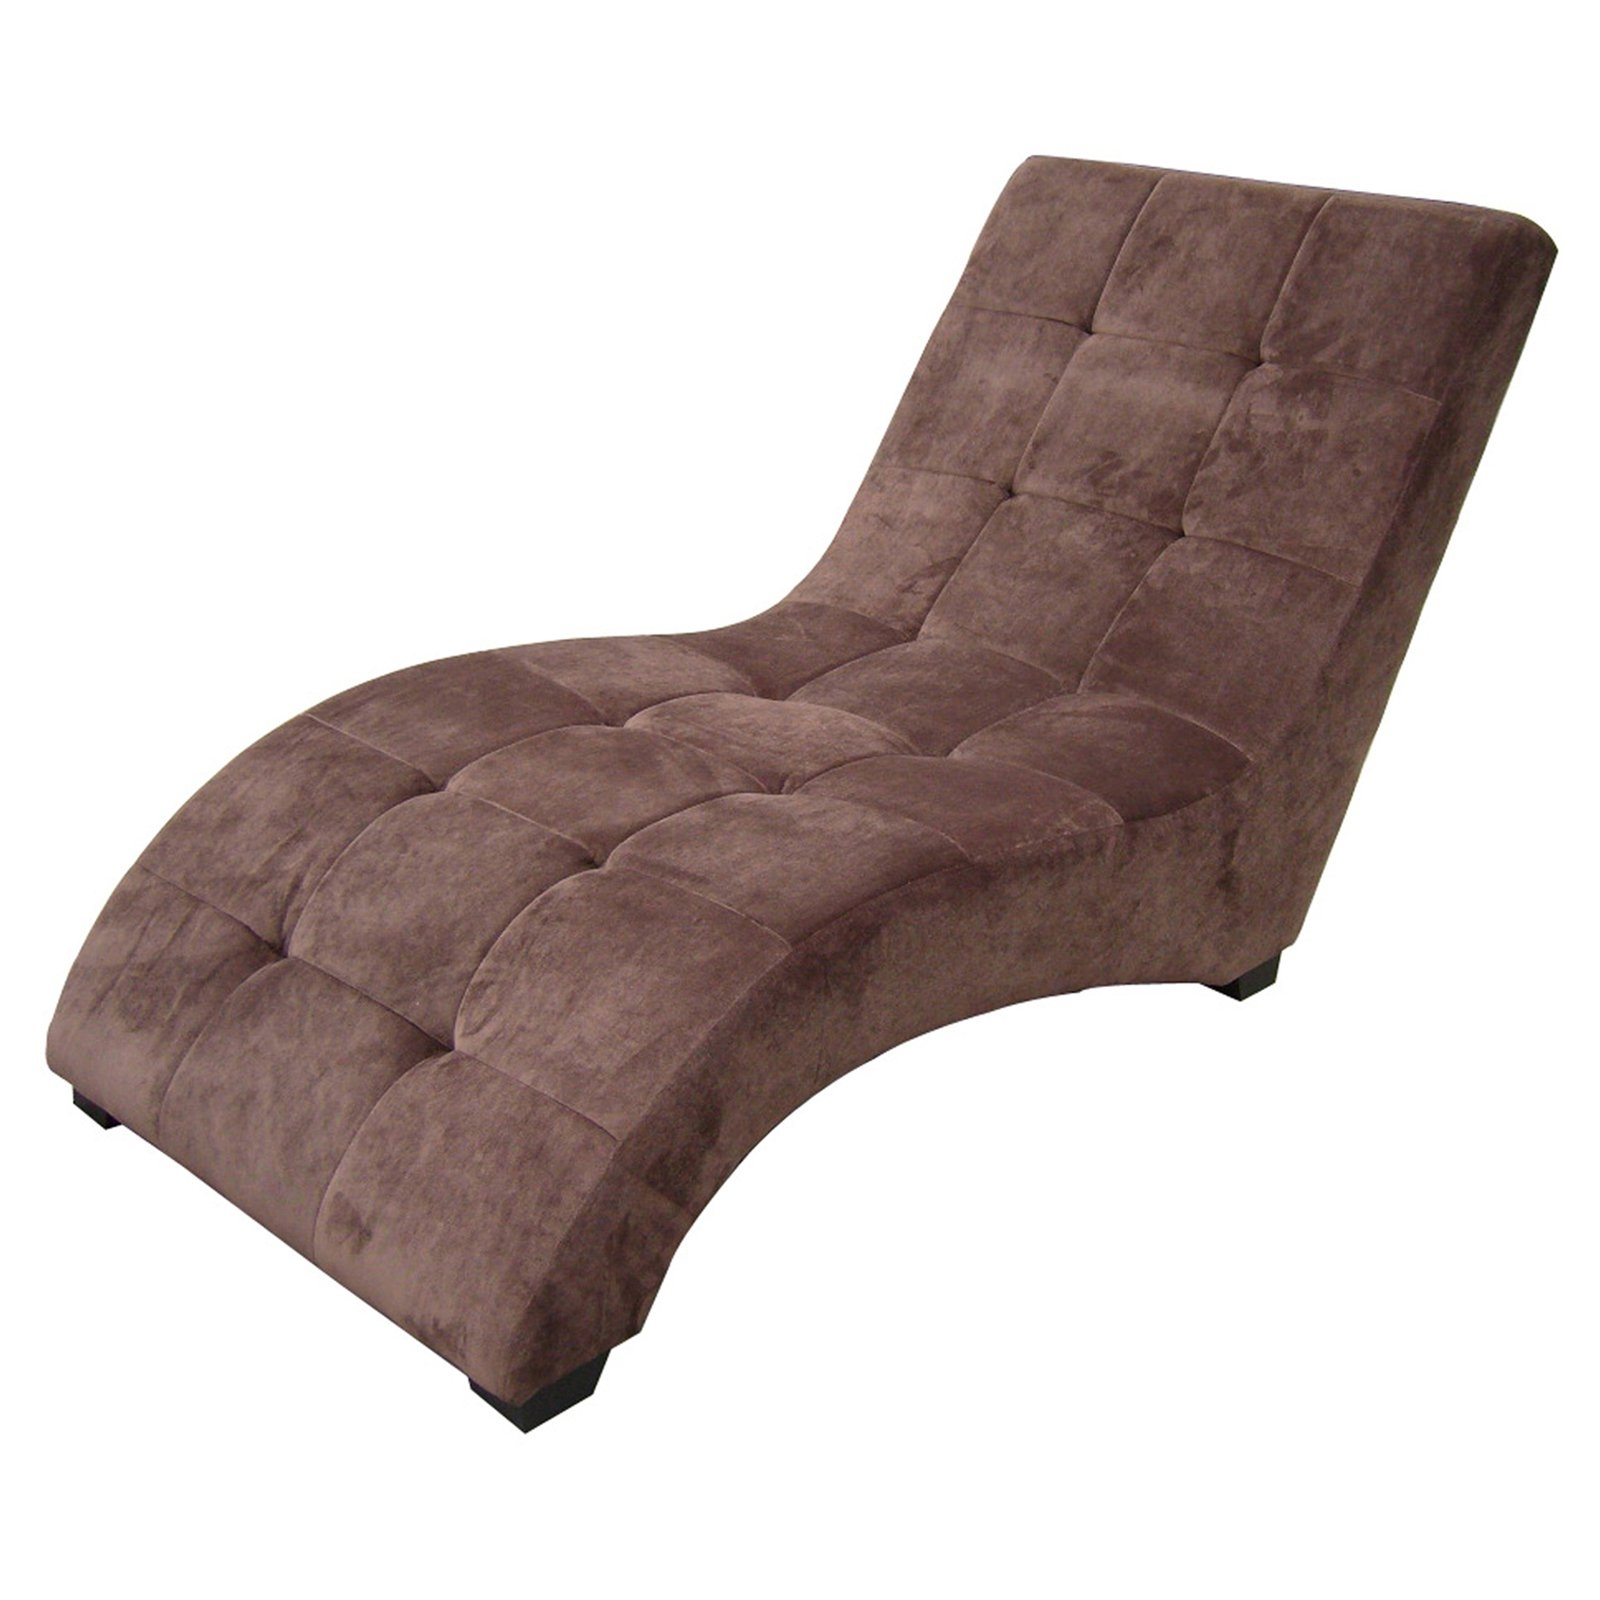 Hayneedle With Brown Chaise Lounges (View 7 of 15)